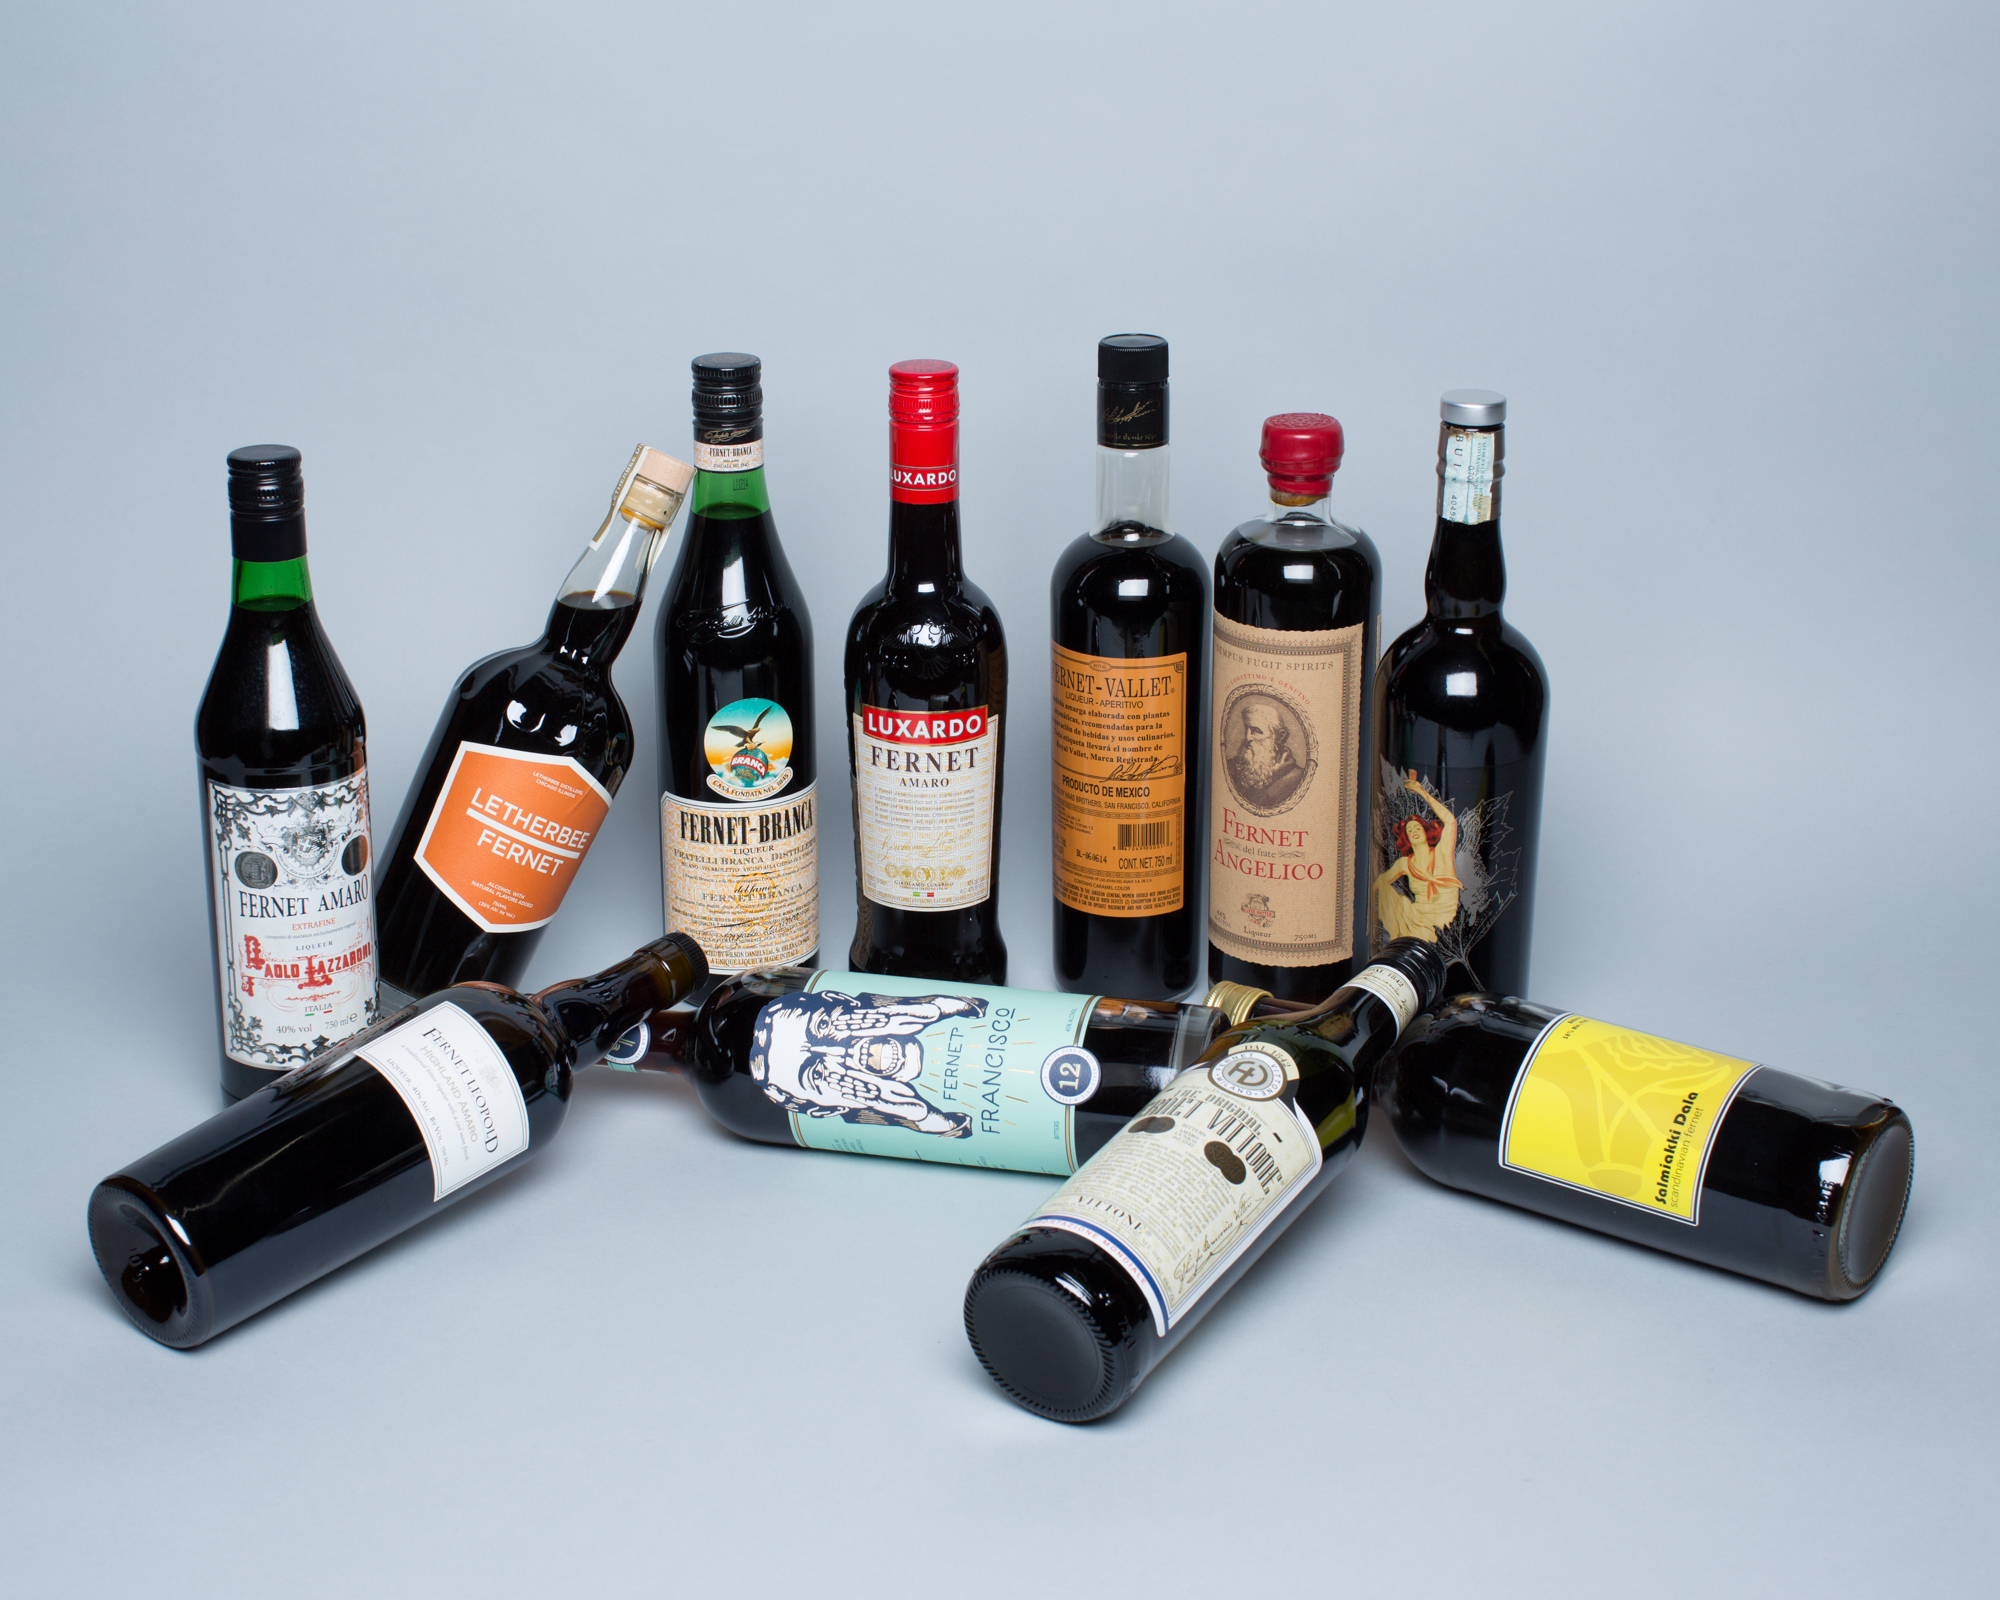 Assorted Fernets from around the world.